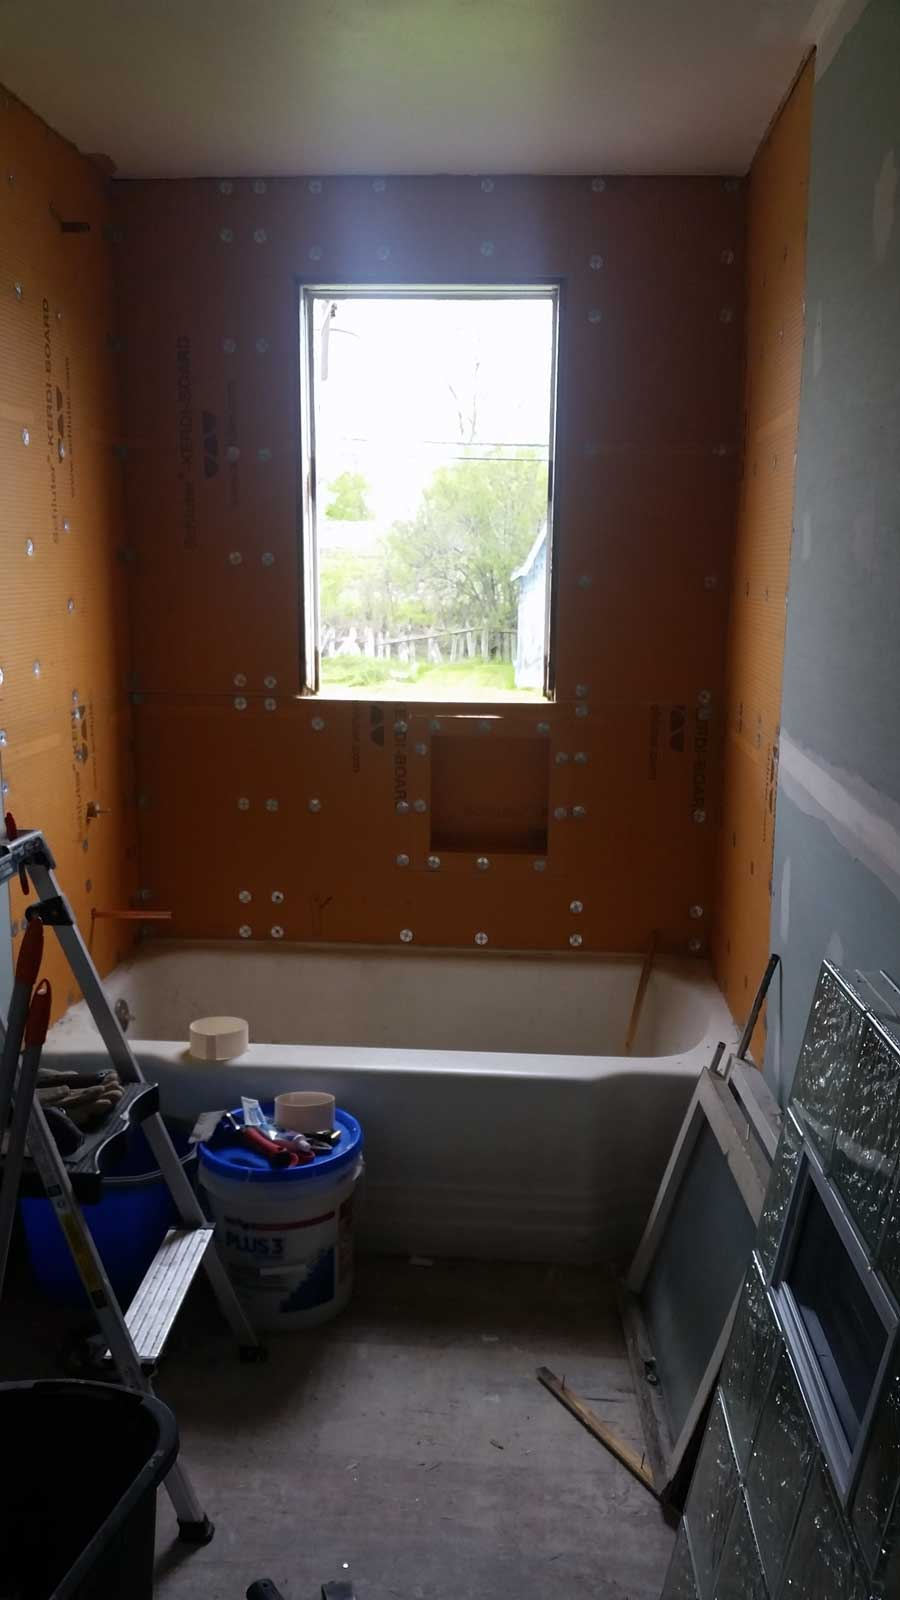 15 Day Bathroom Renovation Plaster 01